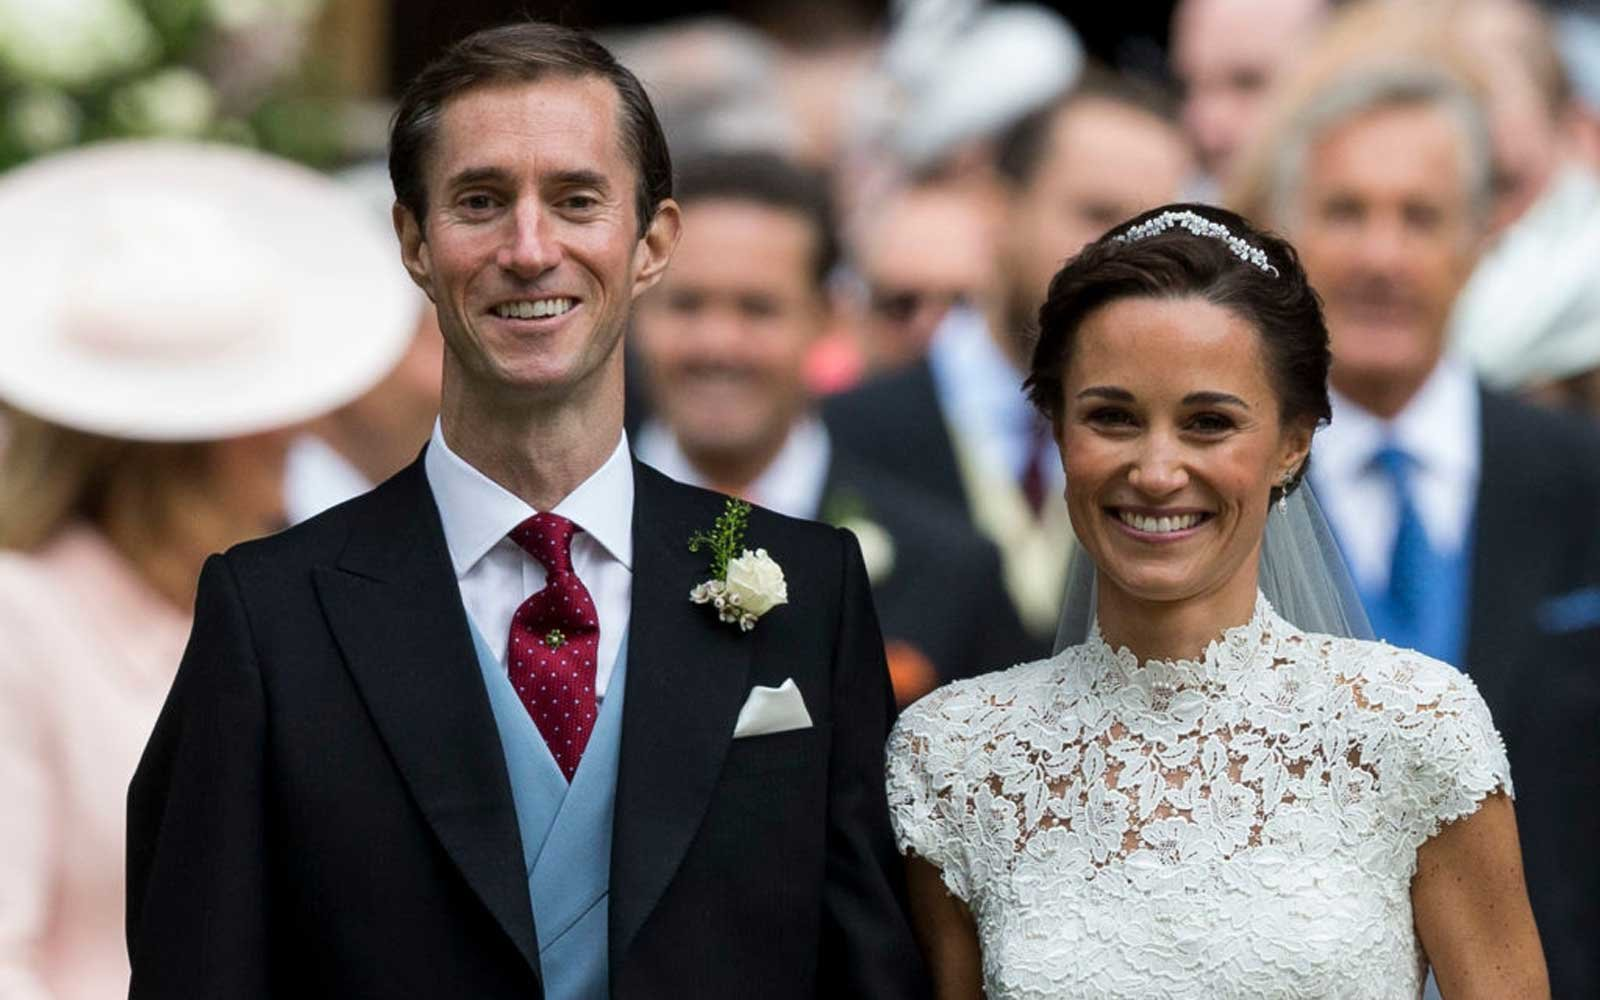 ENGLEFIELD GREEN, ENGLAND - MAY 20:  Pippa Middleton and James Matthews after their wedding at St Mark's Church on May 20, 2017 in Englefield Green, England.  (Photo by UK Press Pool/UK Press via Getty Images)